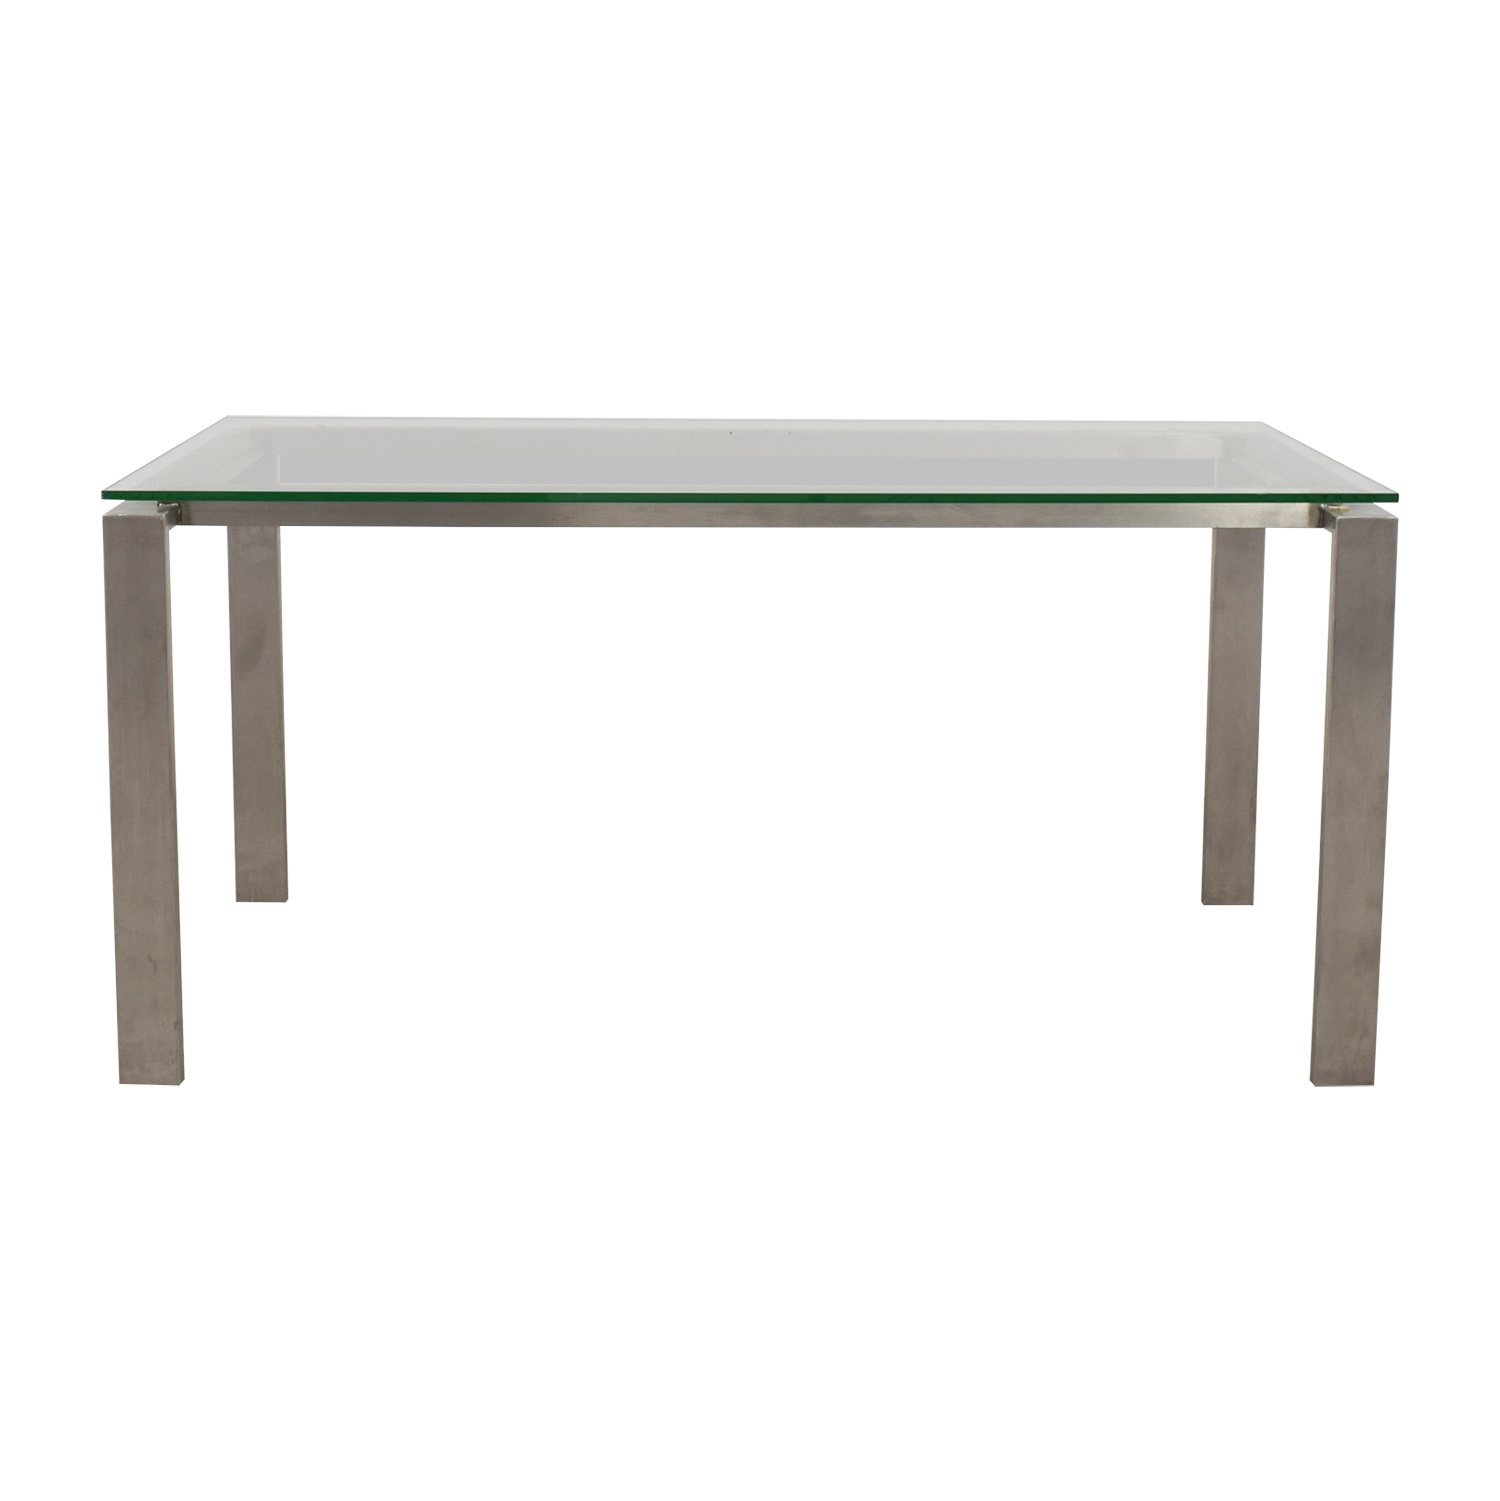 Room & Board Room & Board Rand Stainless Steel and Glass Dining Table coupon